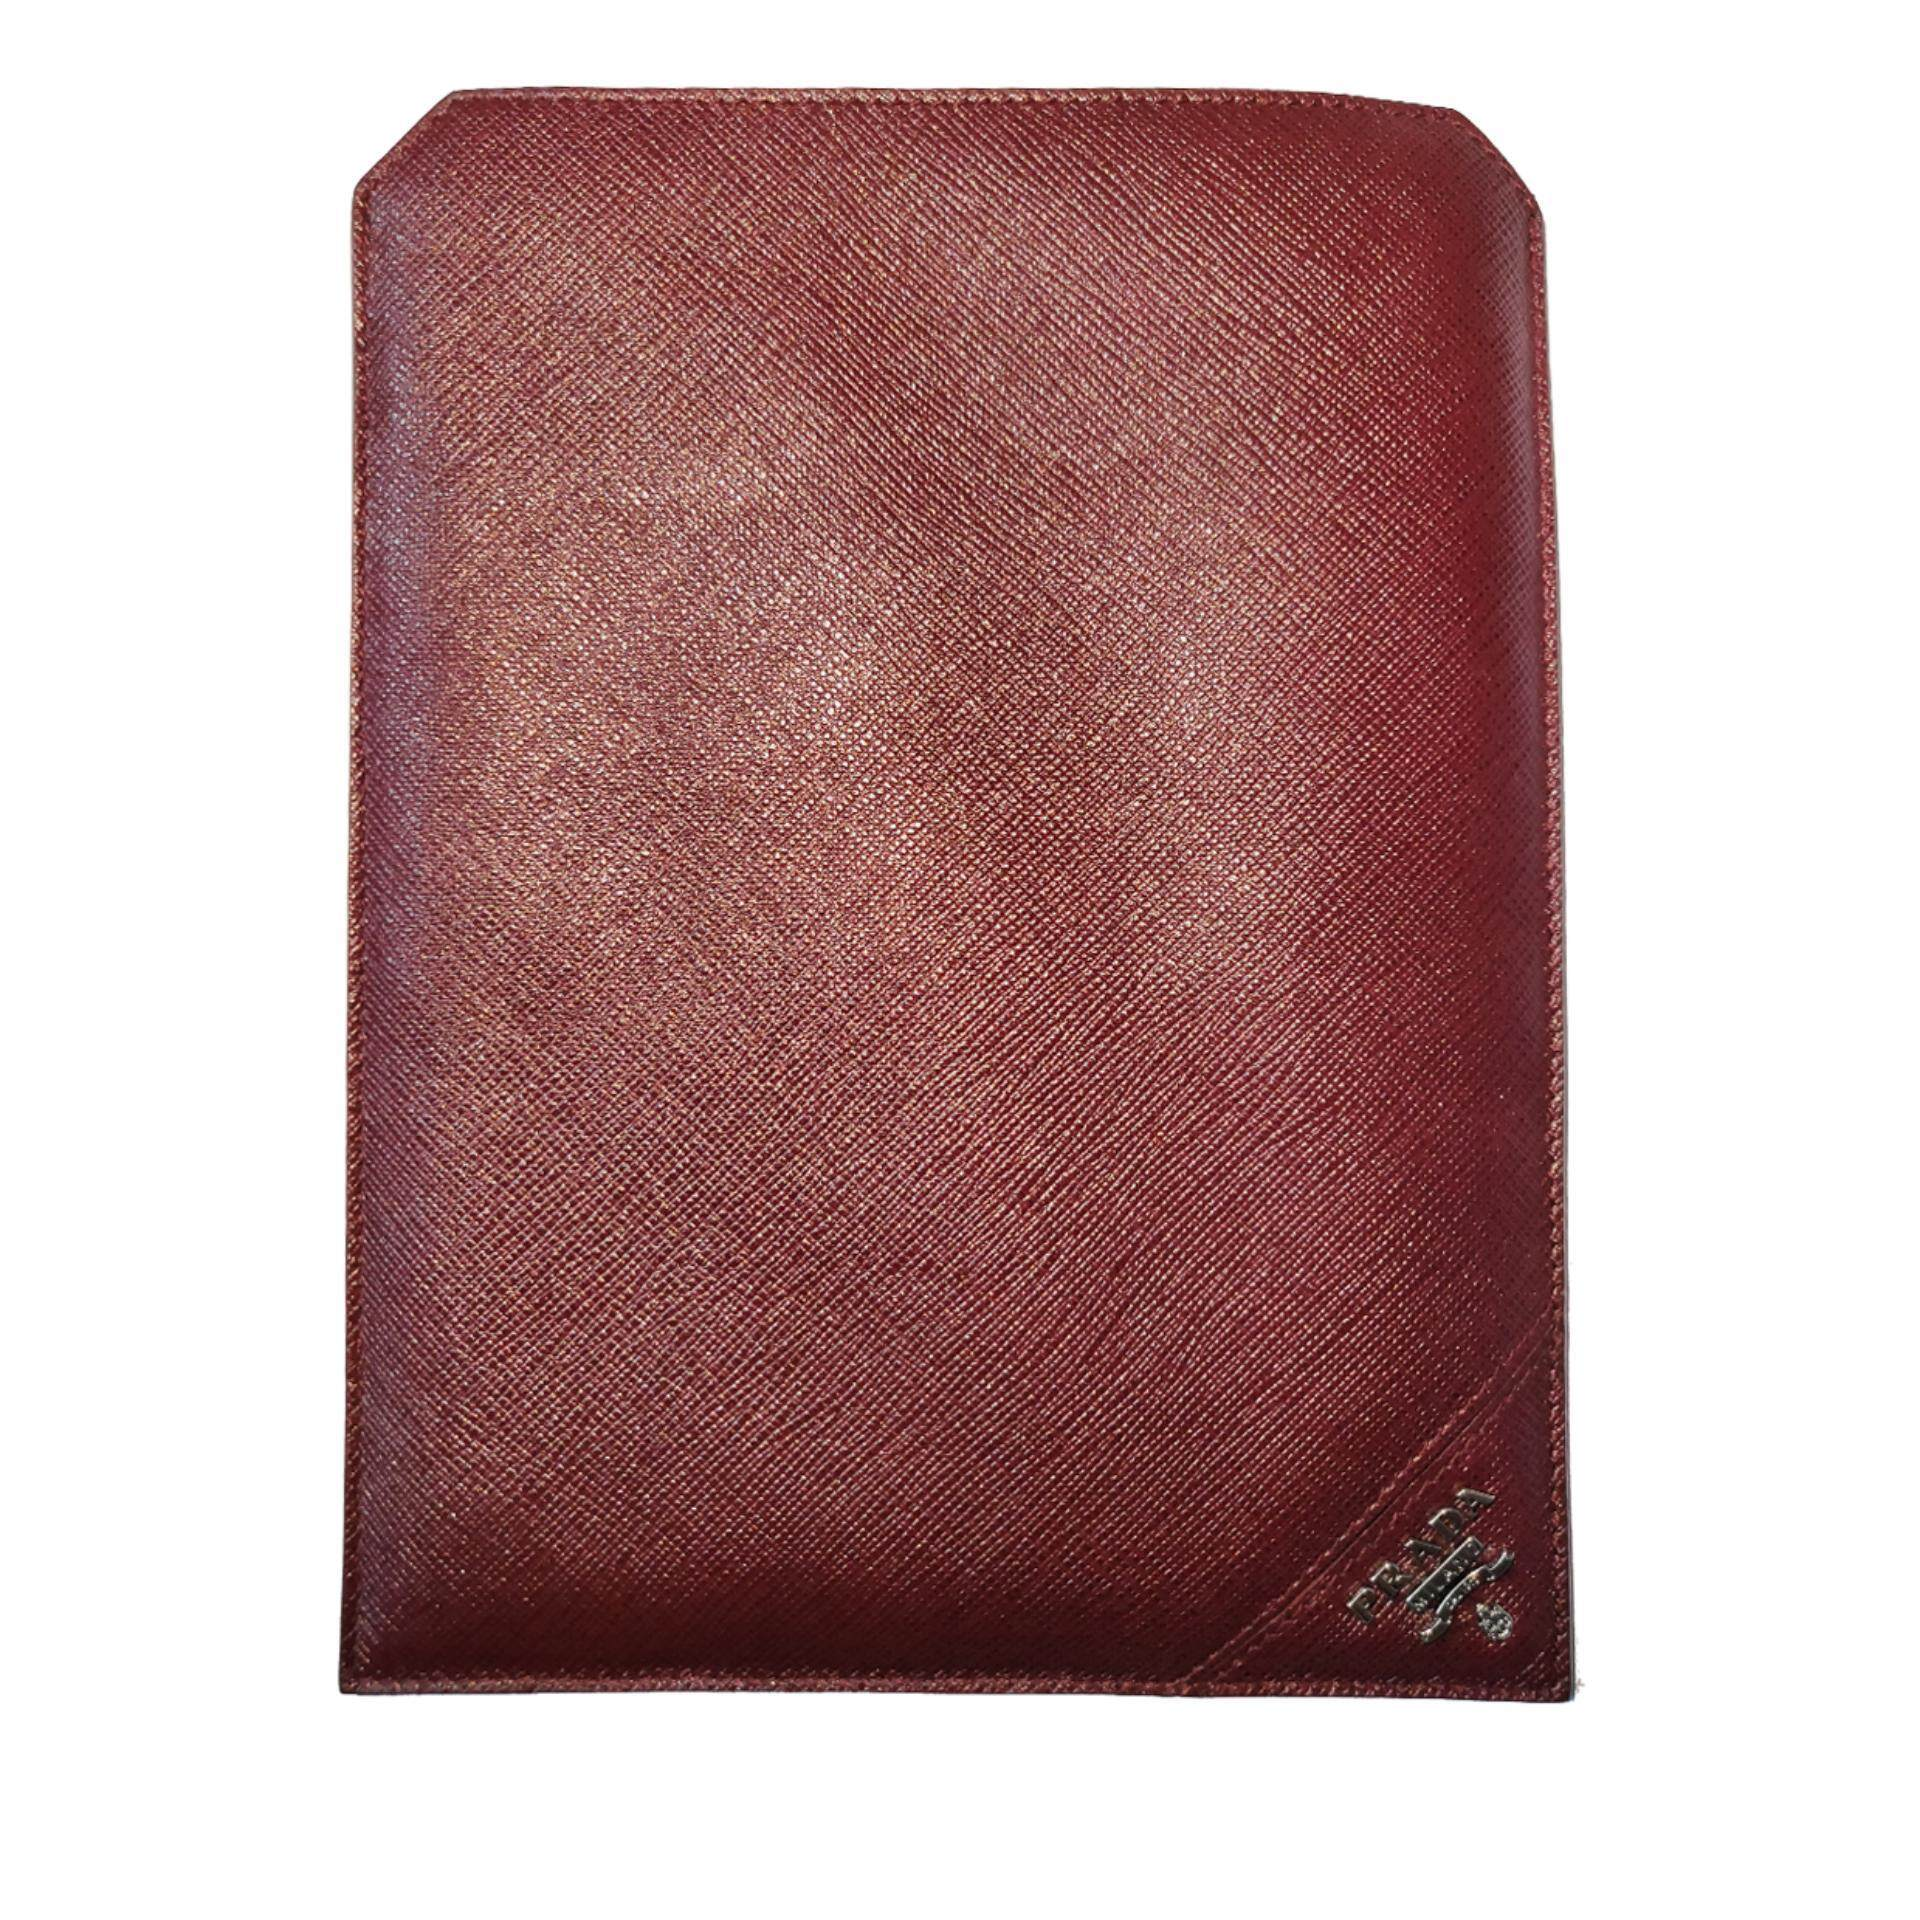 Malaysia Prada Saffiano Leather Uni Ipad Cover